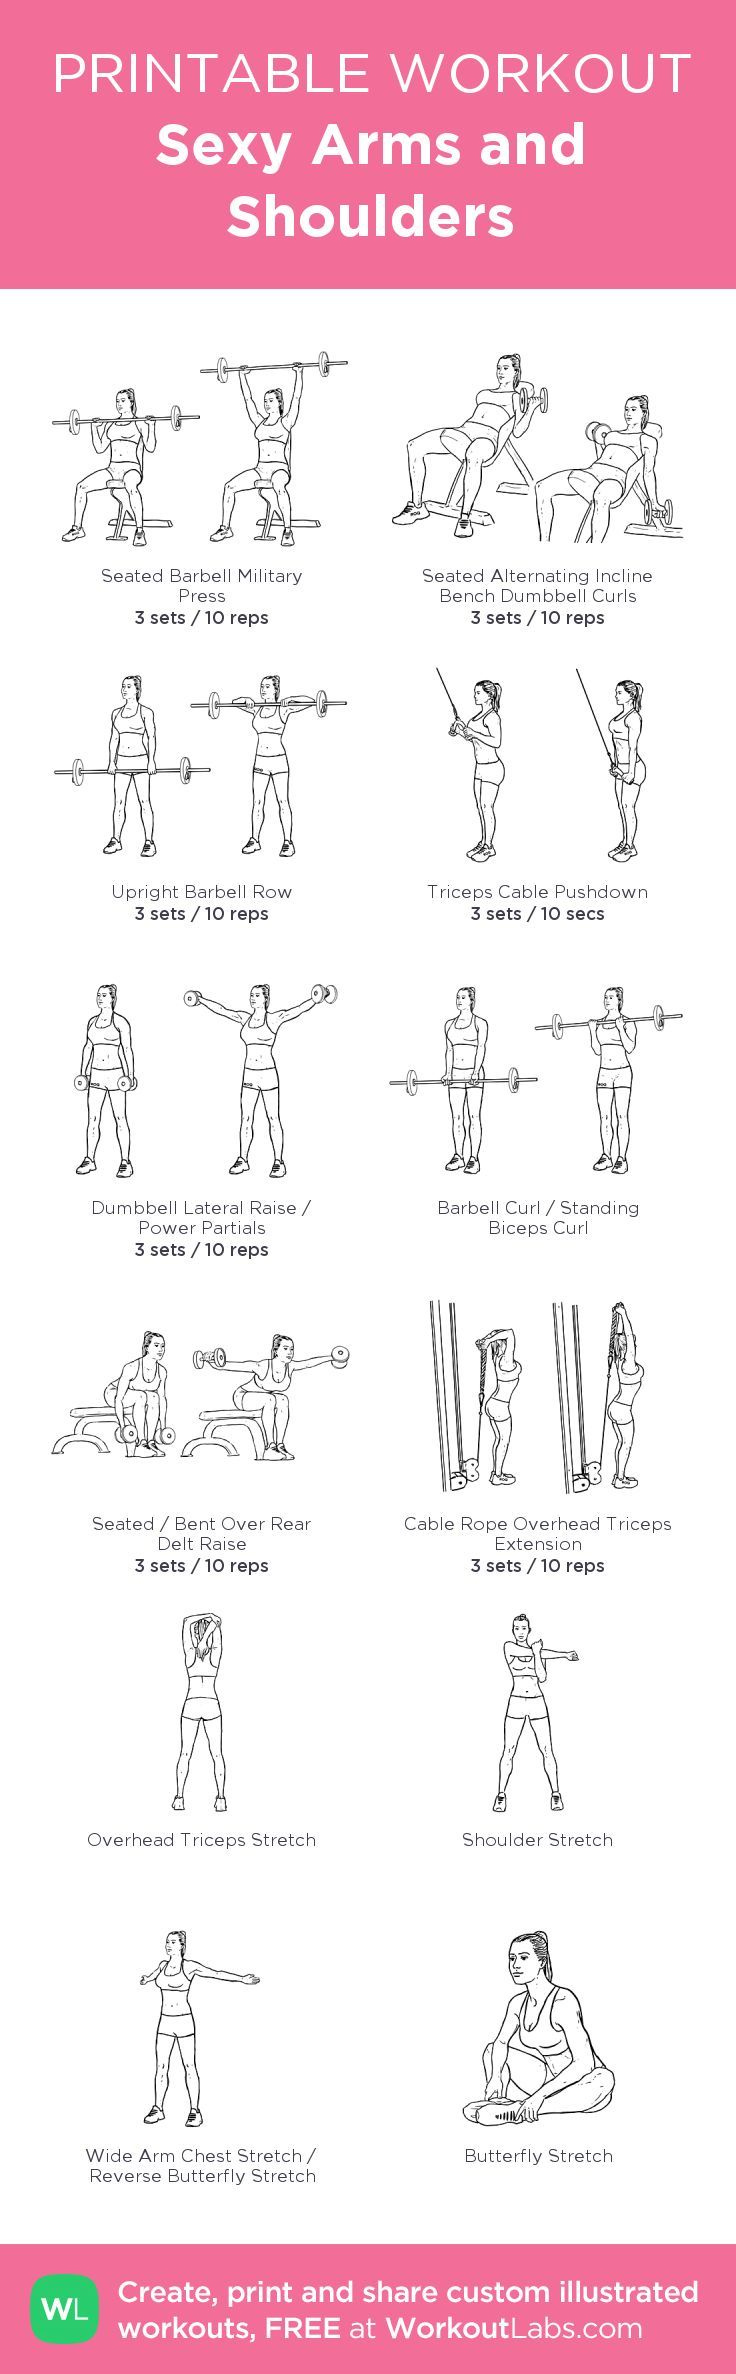 Sexy Arms and Shoulders: my visual workout created at WorkoutLabs.com • Click through to customize and download as a FREE PDF! #customworkout: